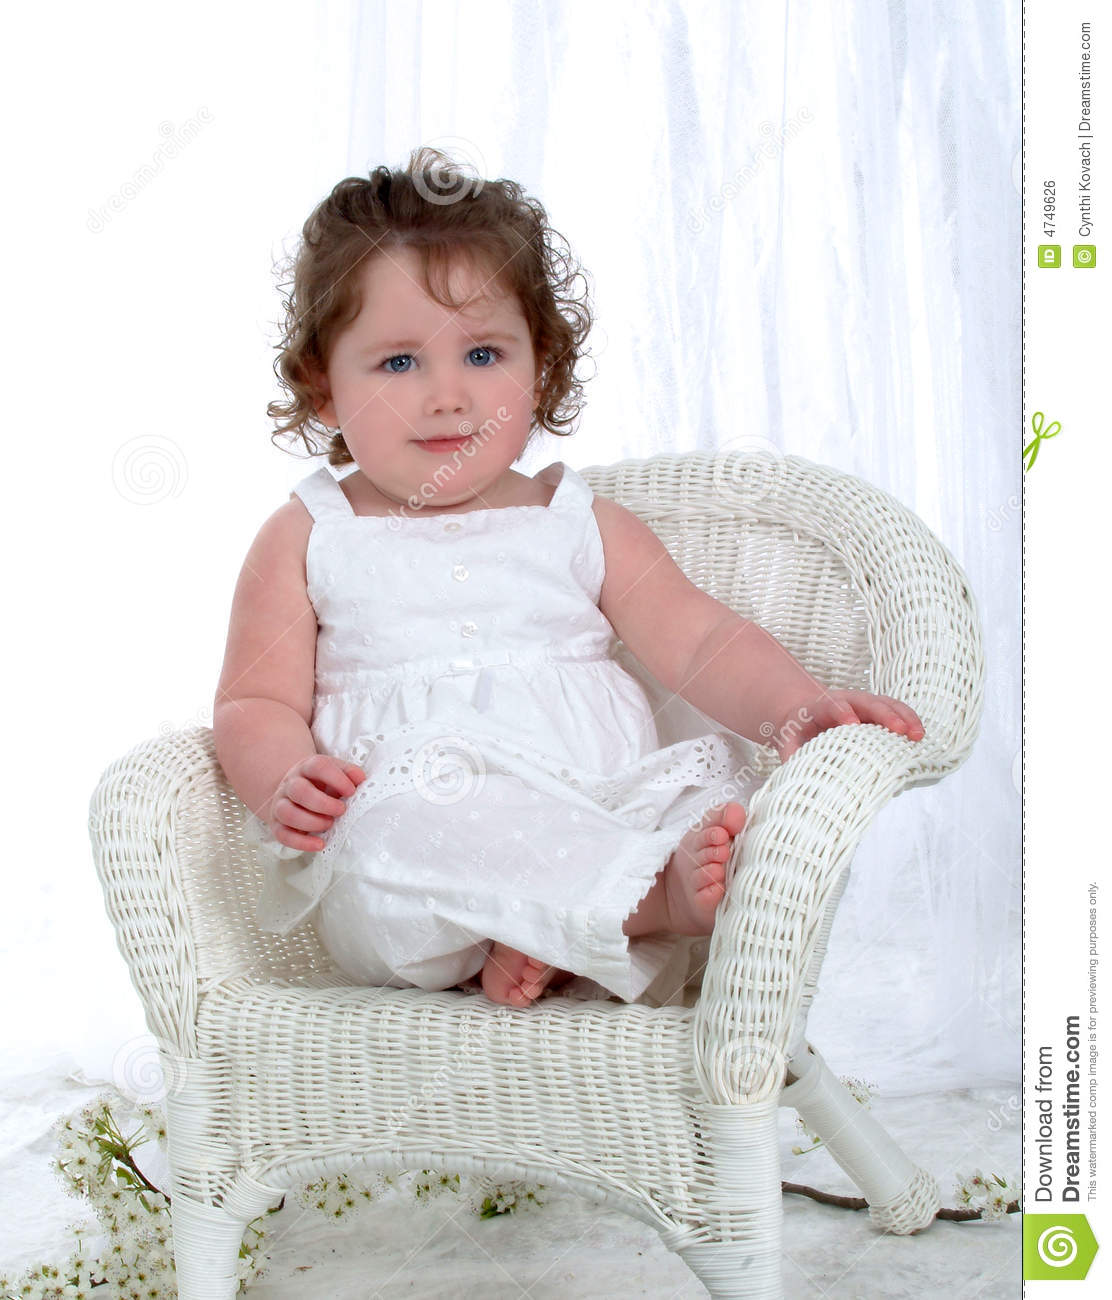 Baby Girl on Wicker Chair